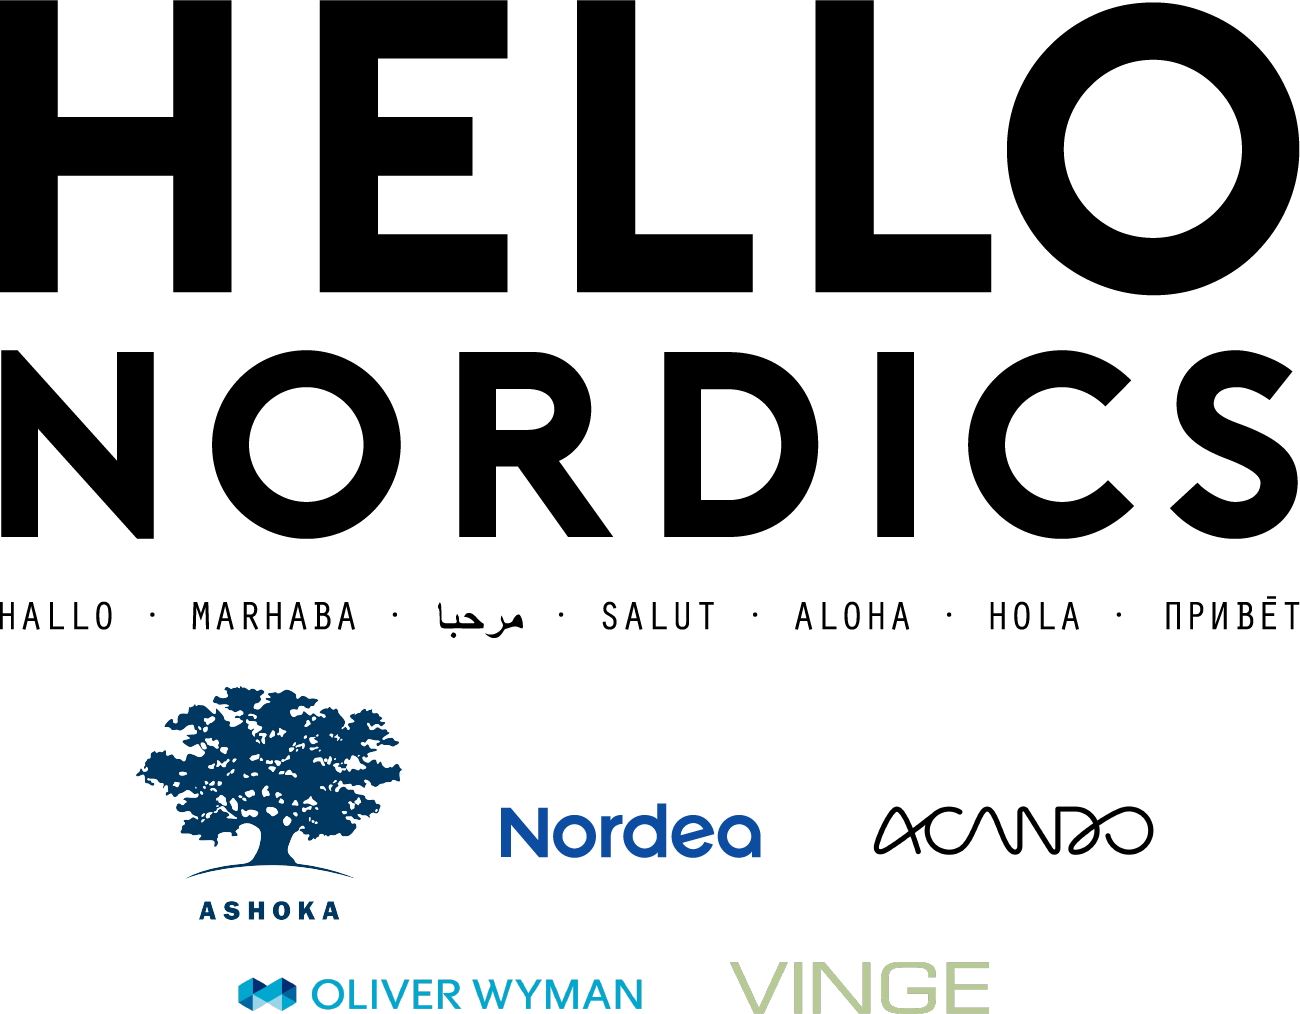 hello_nordics_logo_black.png